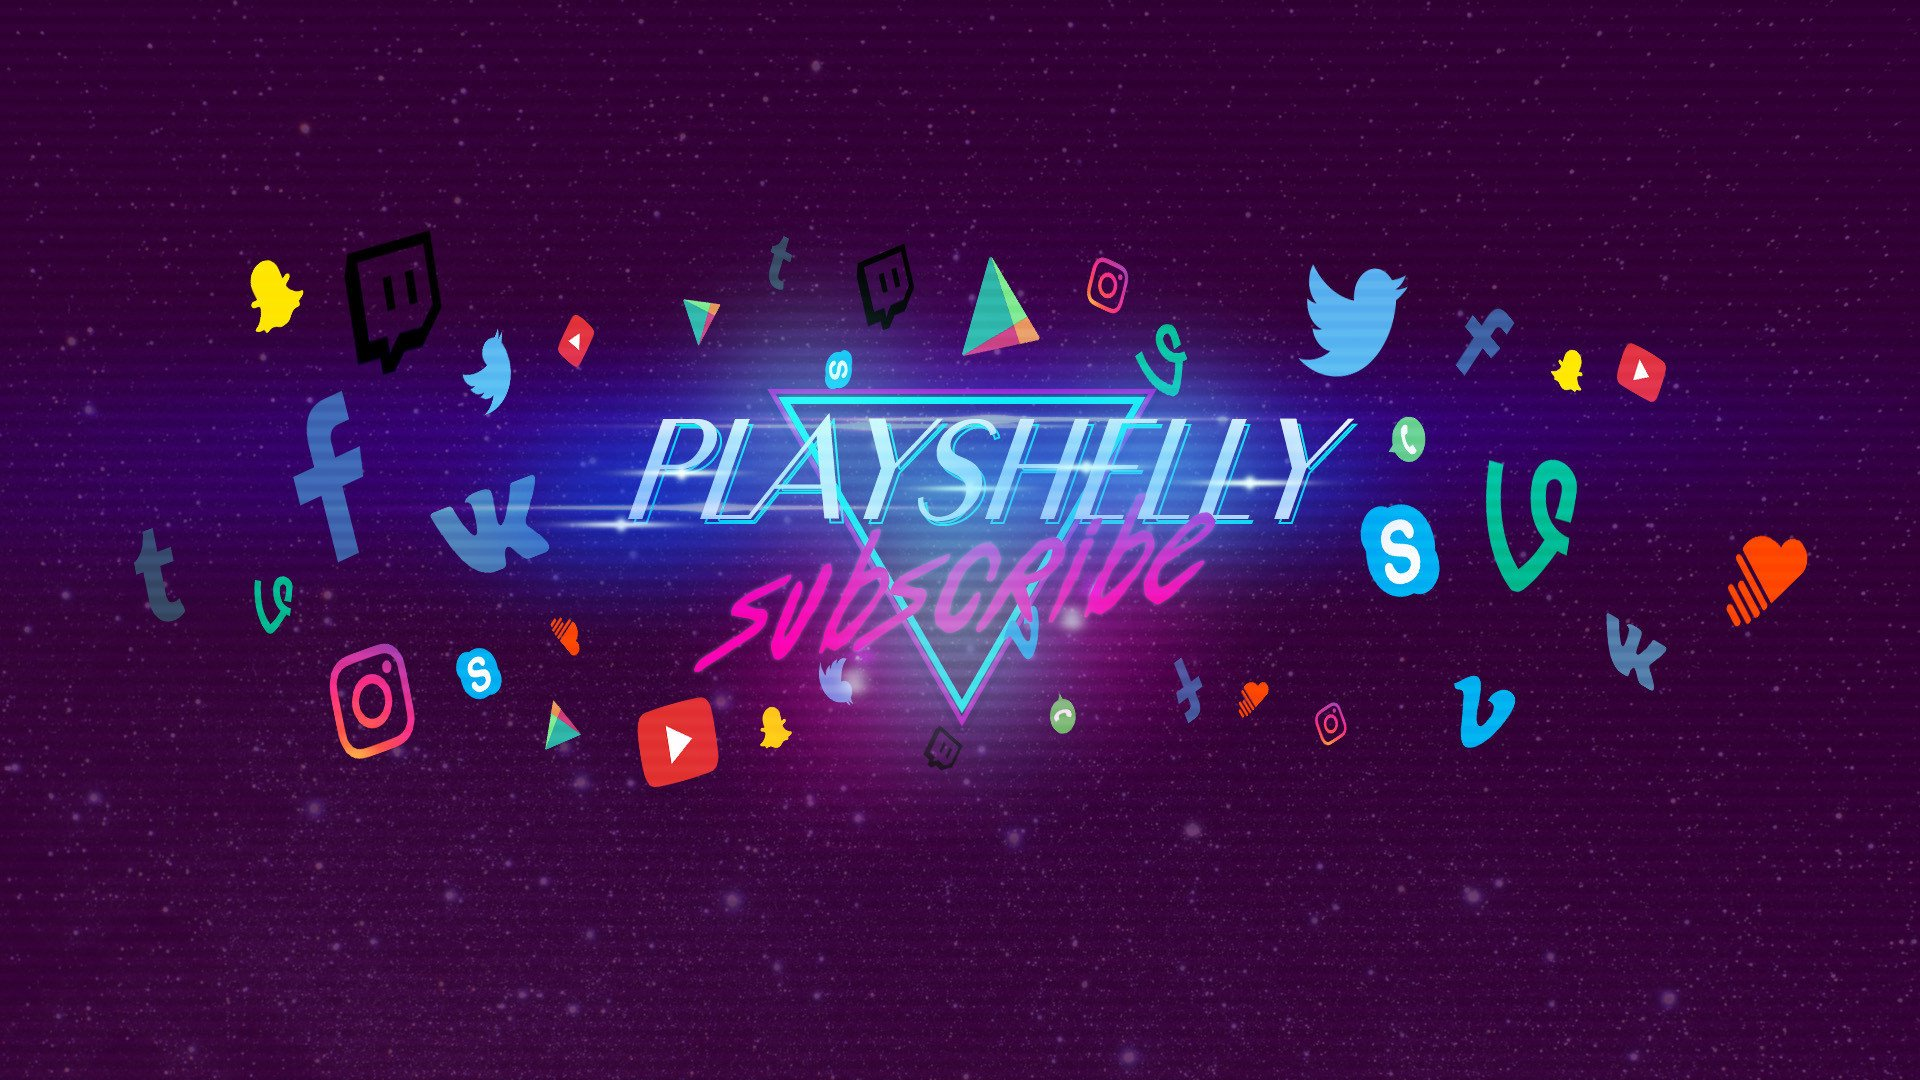 playshelly video banner